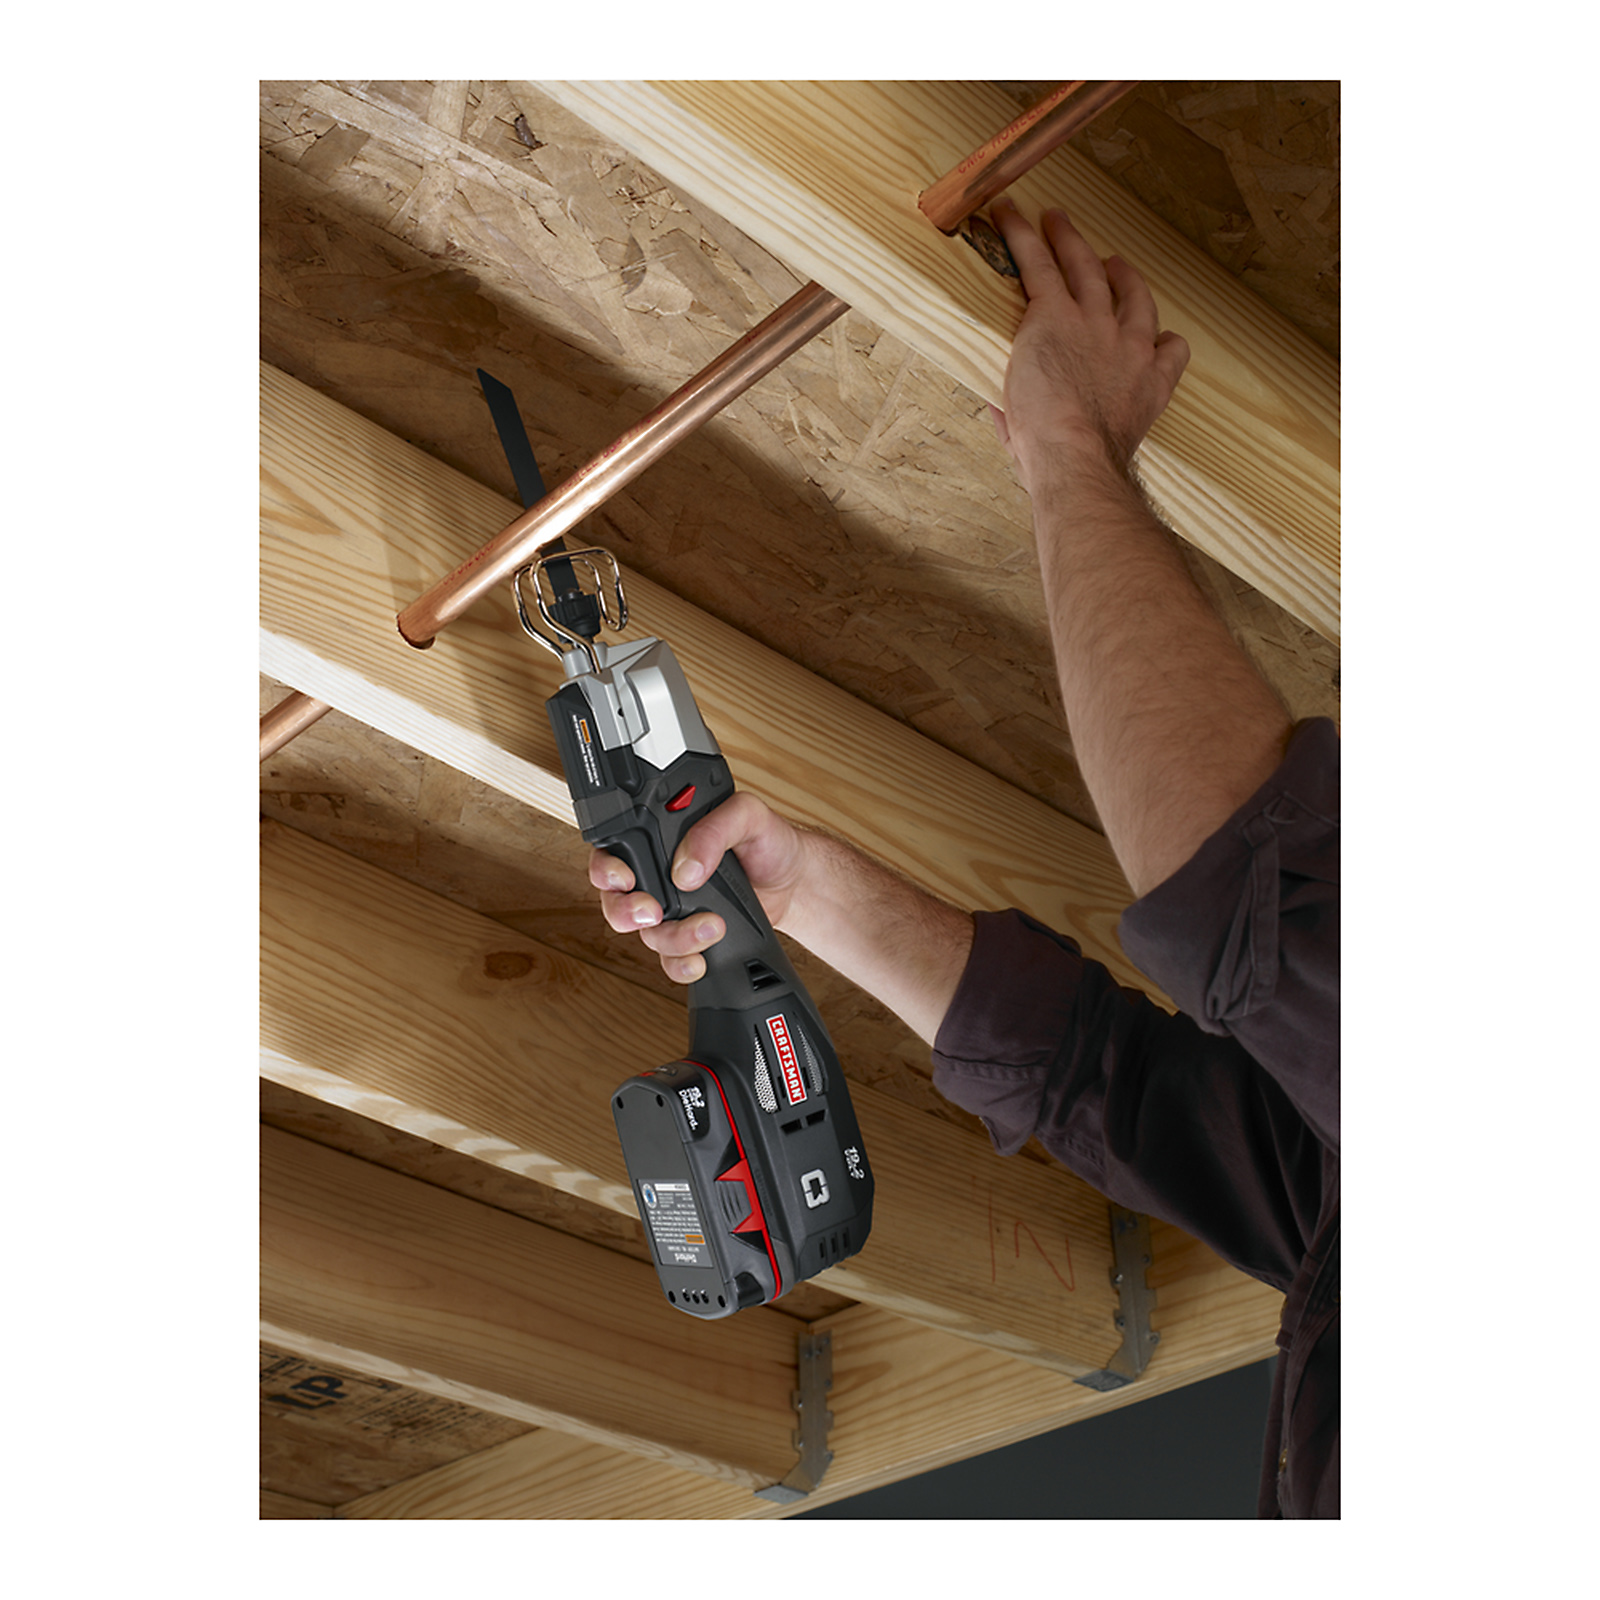 Craftsman 19.2-volt C3 Cordless One-Handed Reciprocating Saw